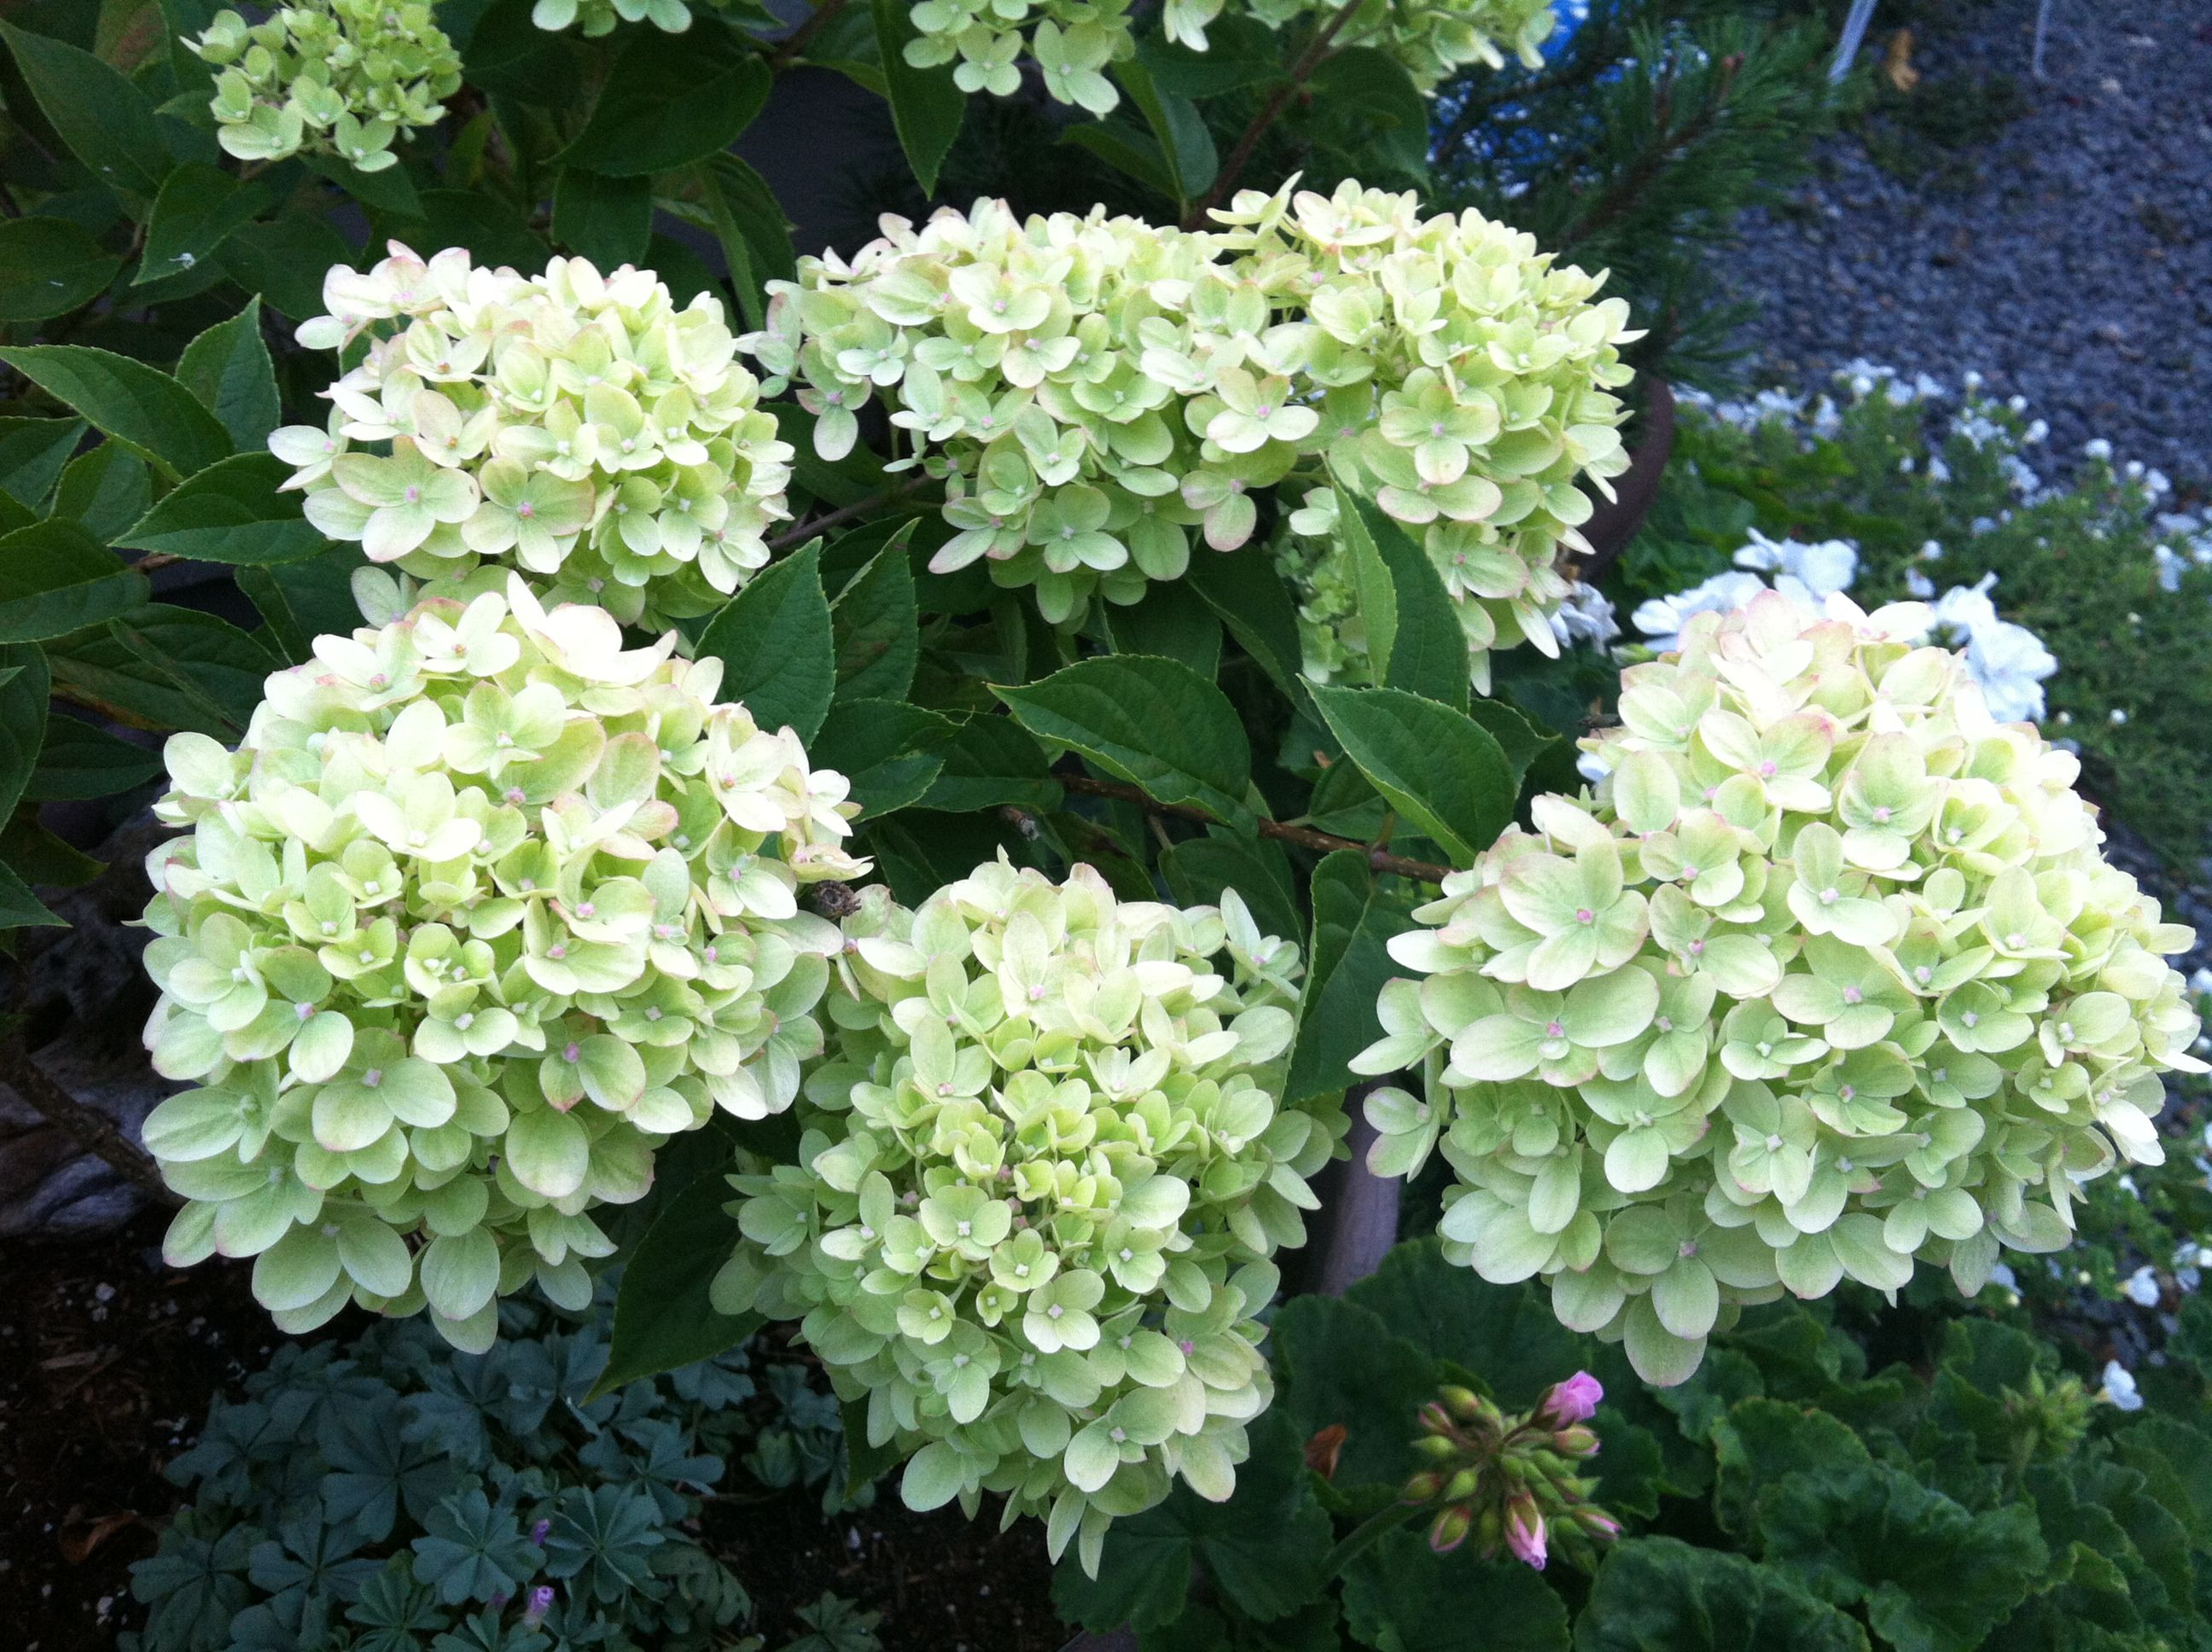 Limelight hydrangea flowers and gardens and patios for Limelight hydrangea